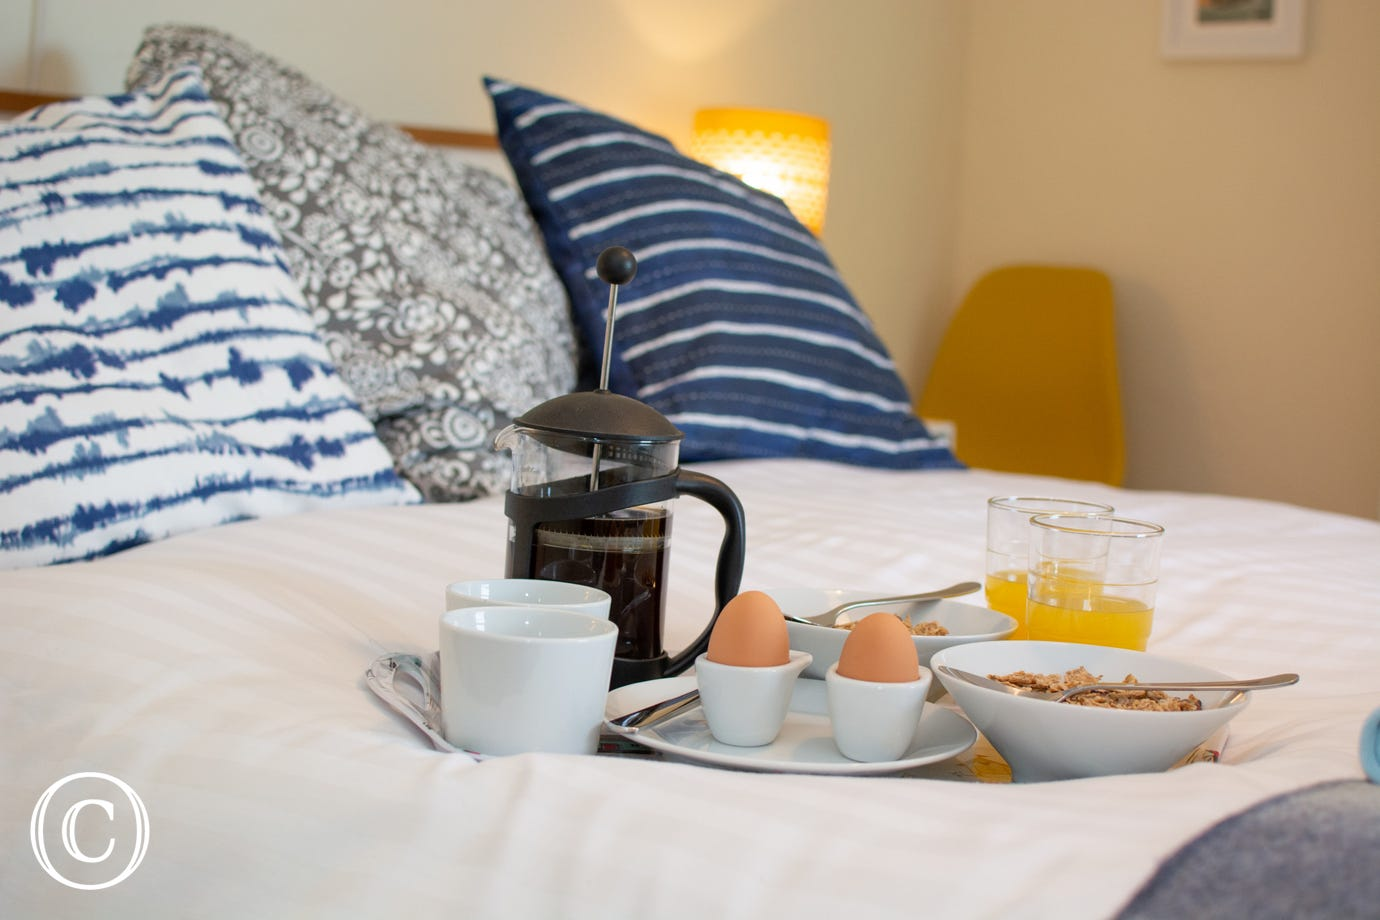 Larkrise breakfast tray on bed